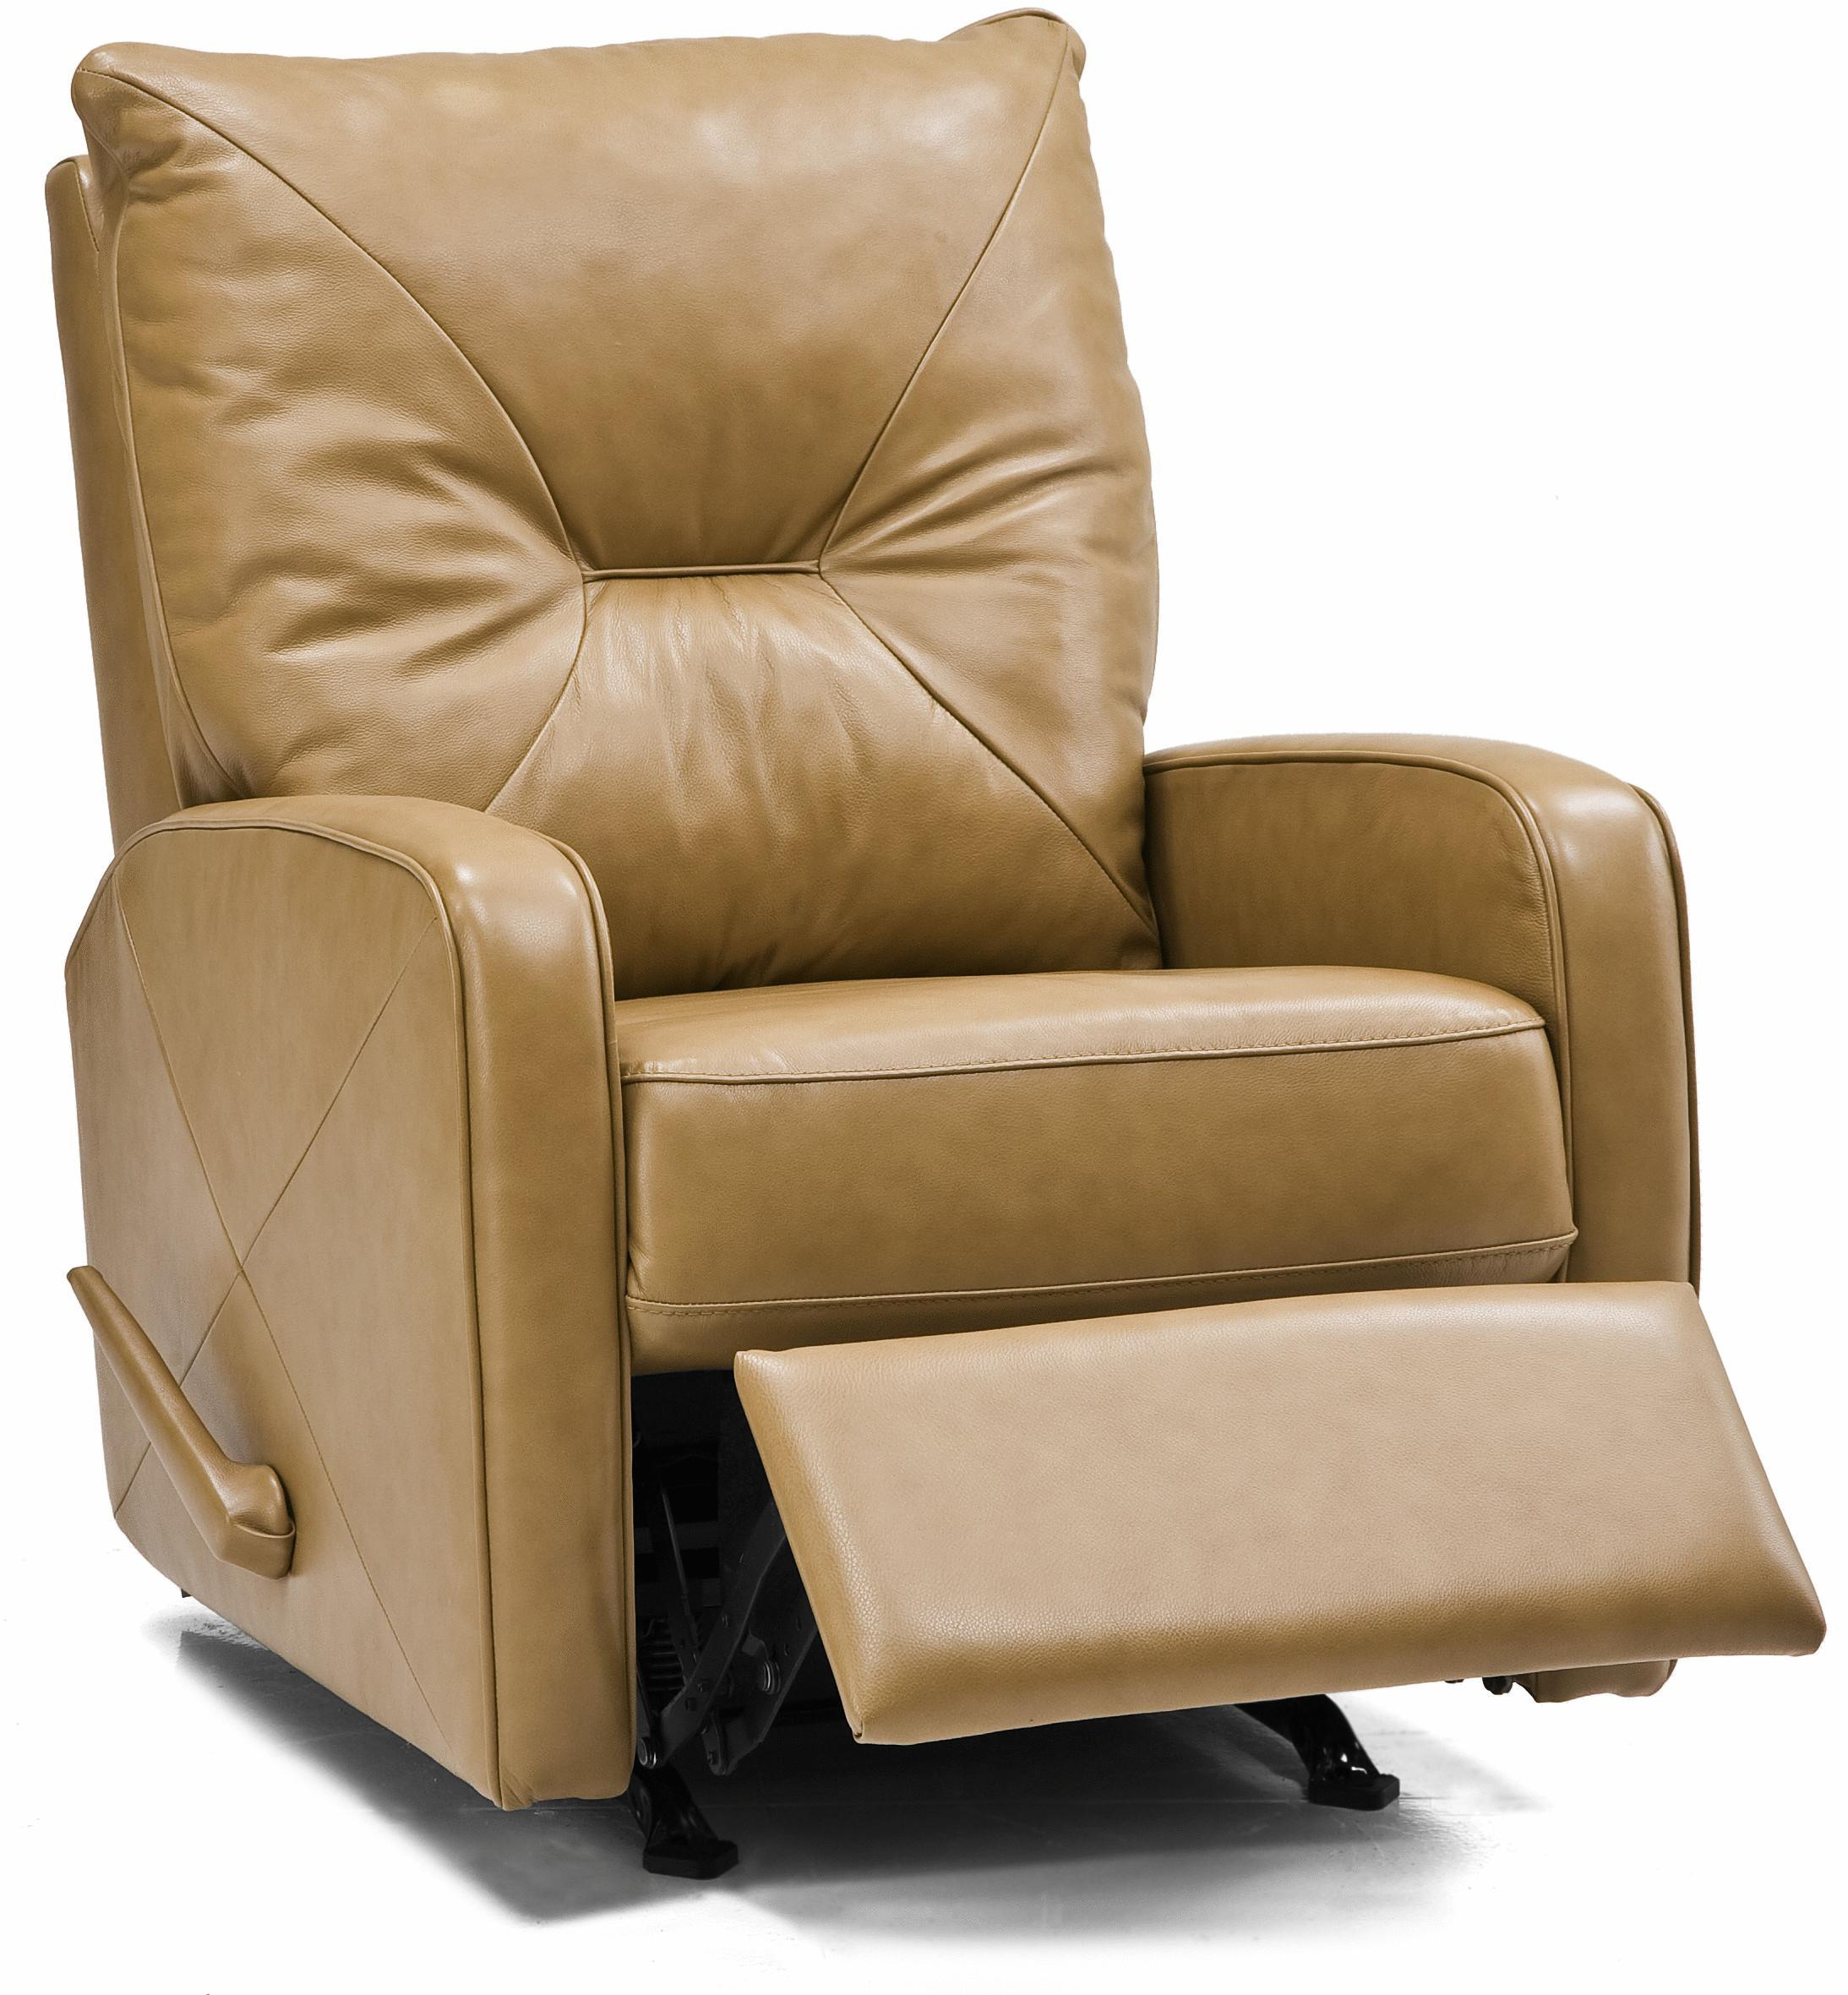 high height item chairs trim furniture width chair recliner reclining threshold hooker button with wing chairshigh products leg